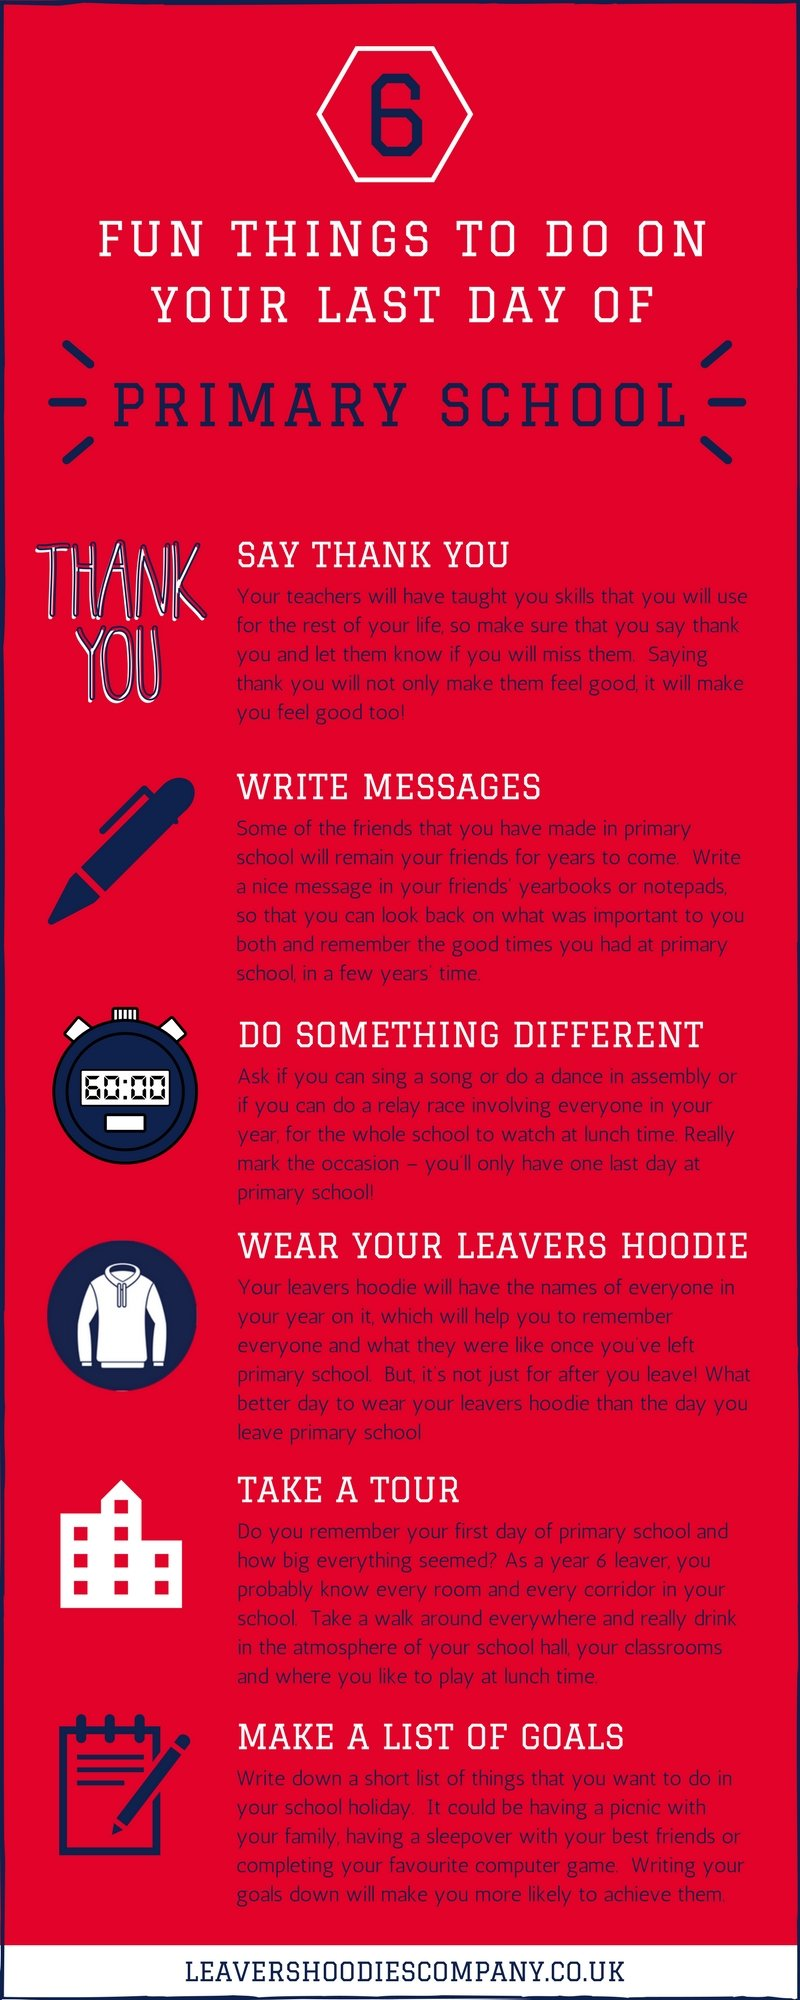 6 things to do last day primary school infographic